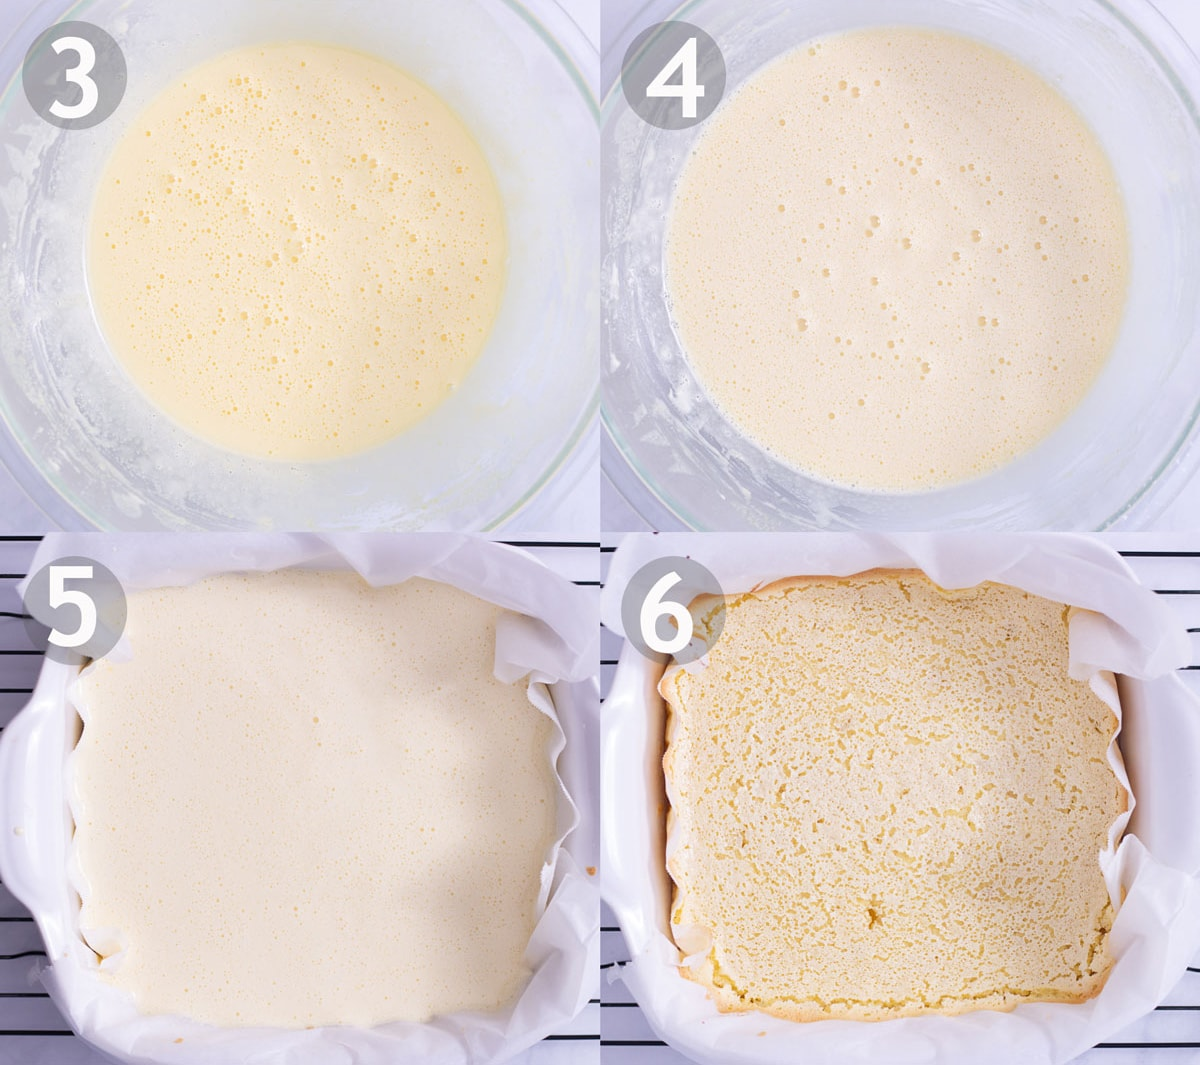 Steps to make lemon bars: mix filling ingredients and bake in crust.